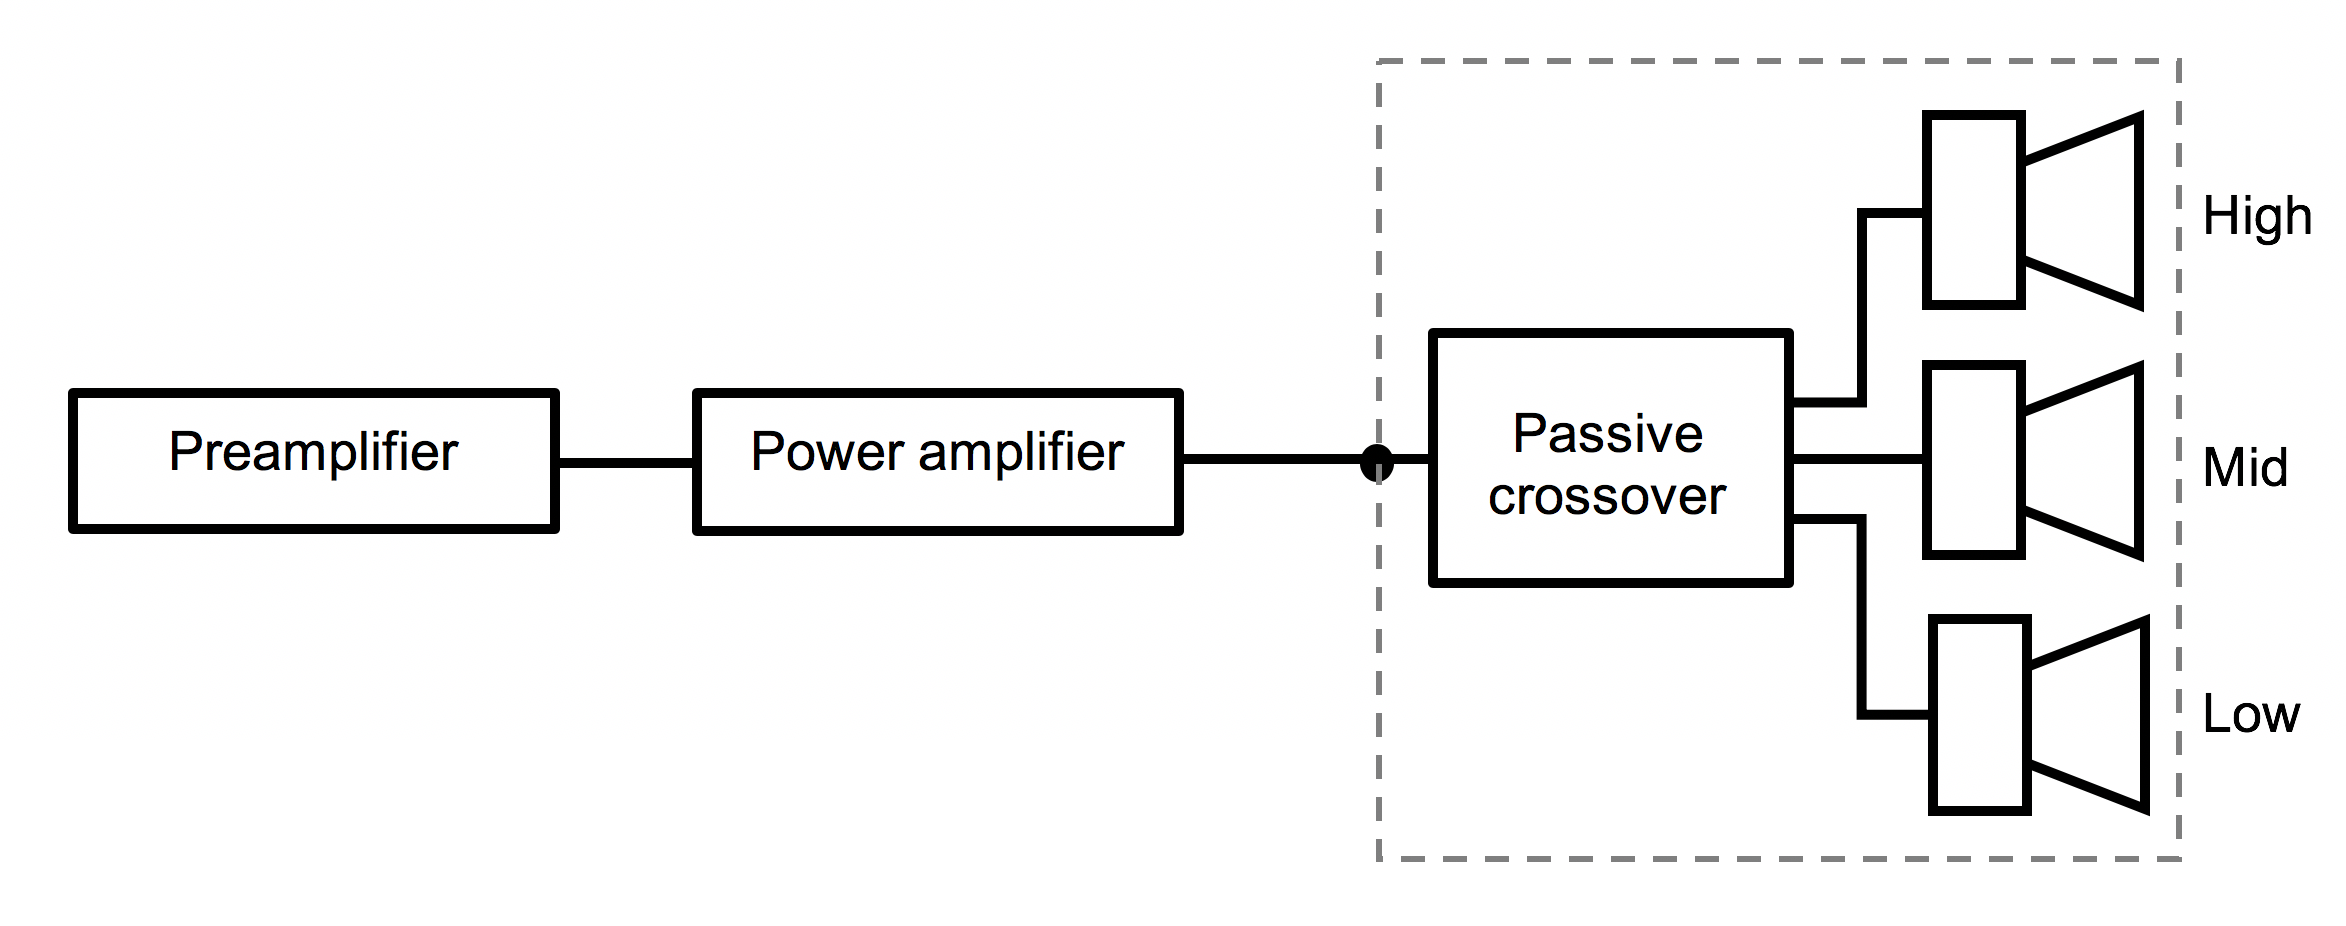 Figure 1. An example of a passive loudspeaker system